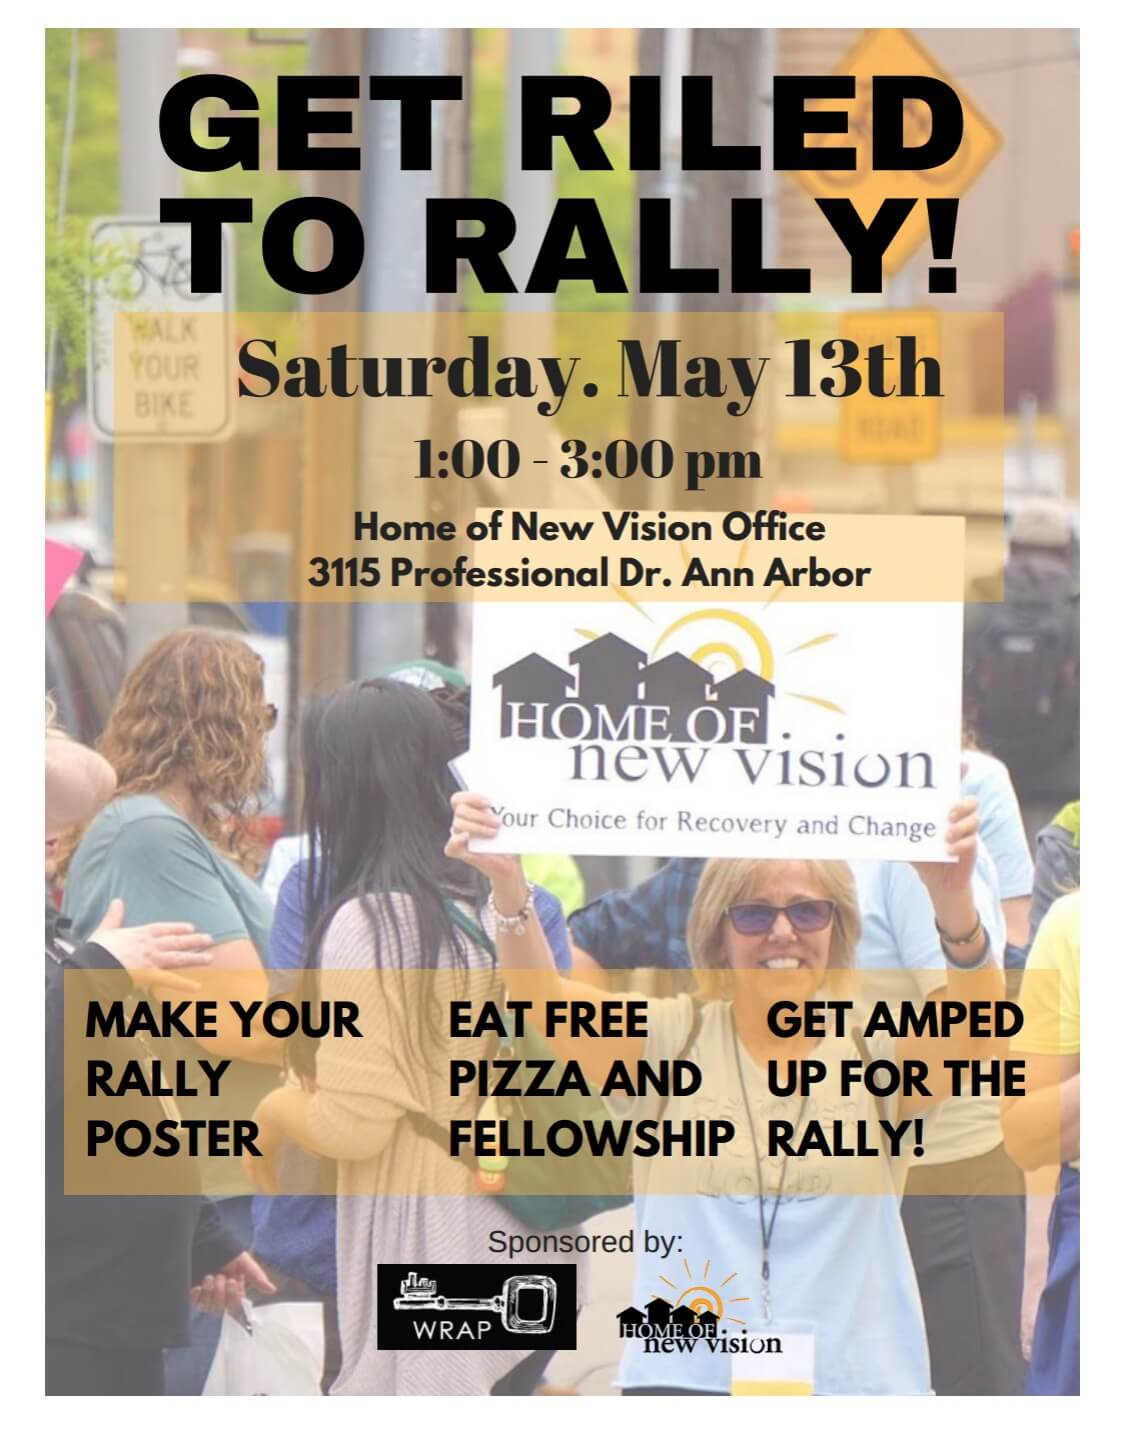 WRAP Pre-rally event may 13 1-3